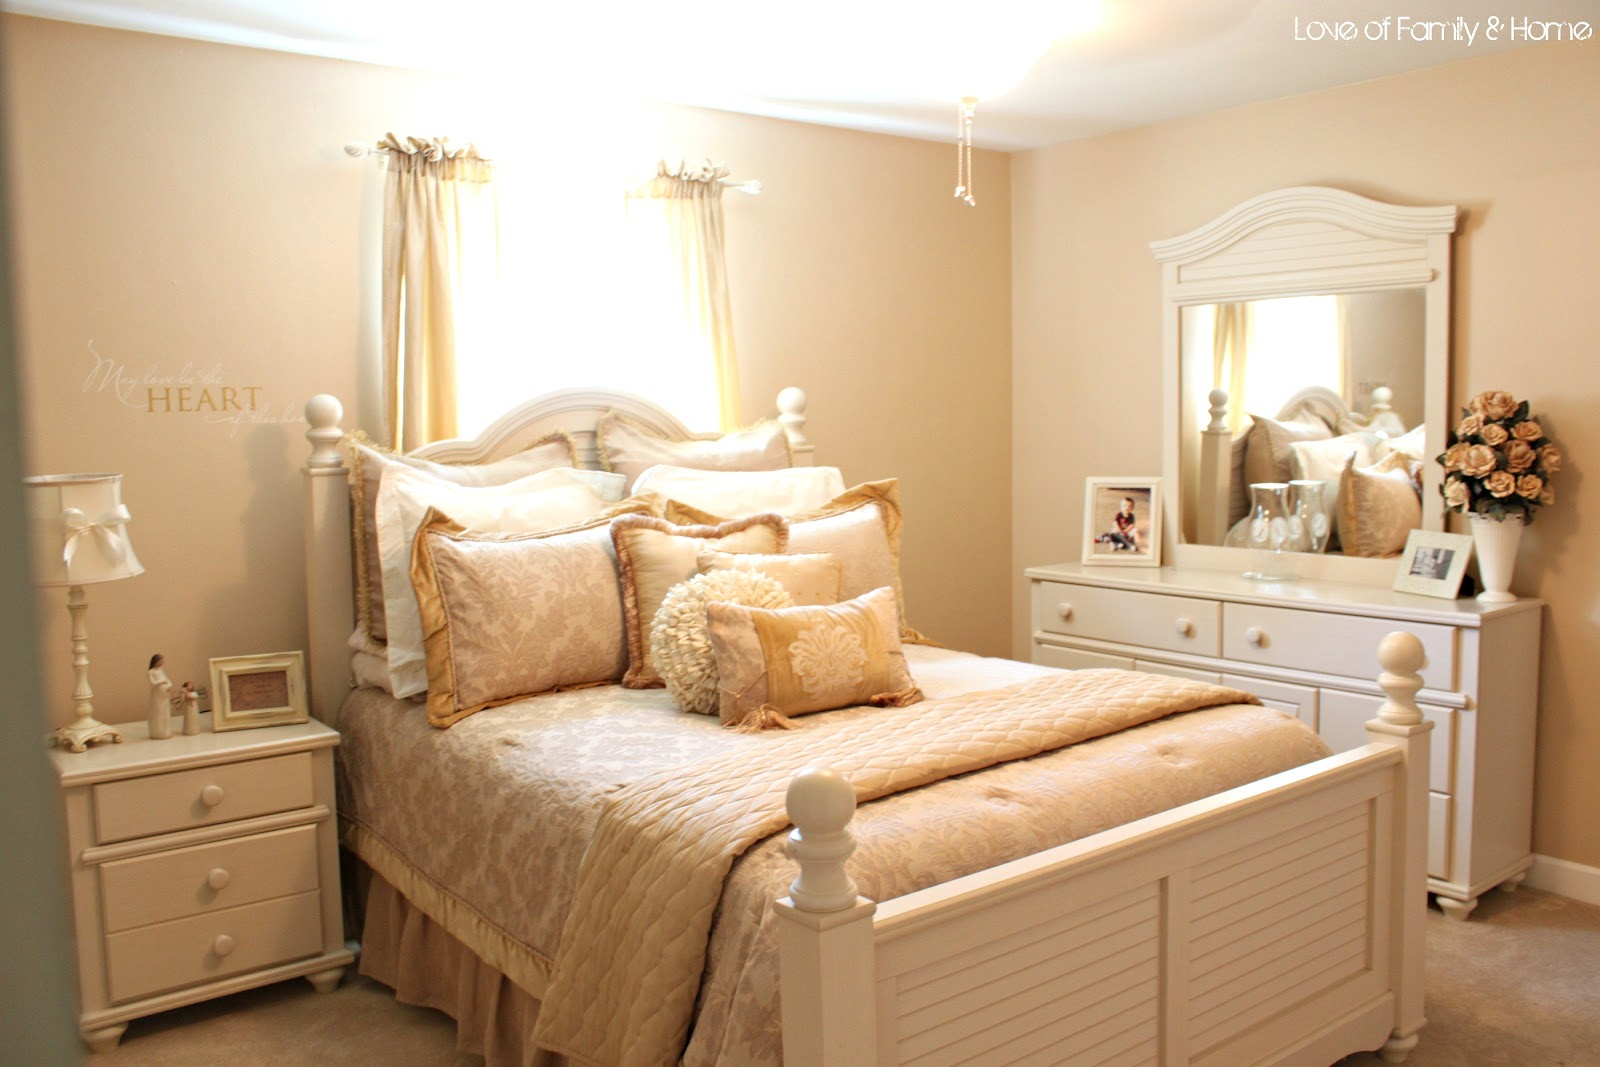 10 Cottage Style Bedrooms...Makeover Inspiration - Love of ... on Makeup Bedroom  id=21196